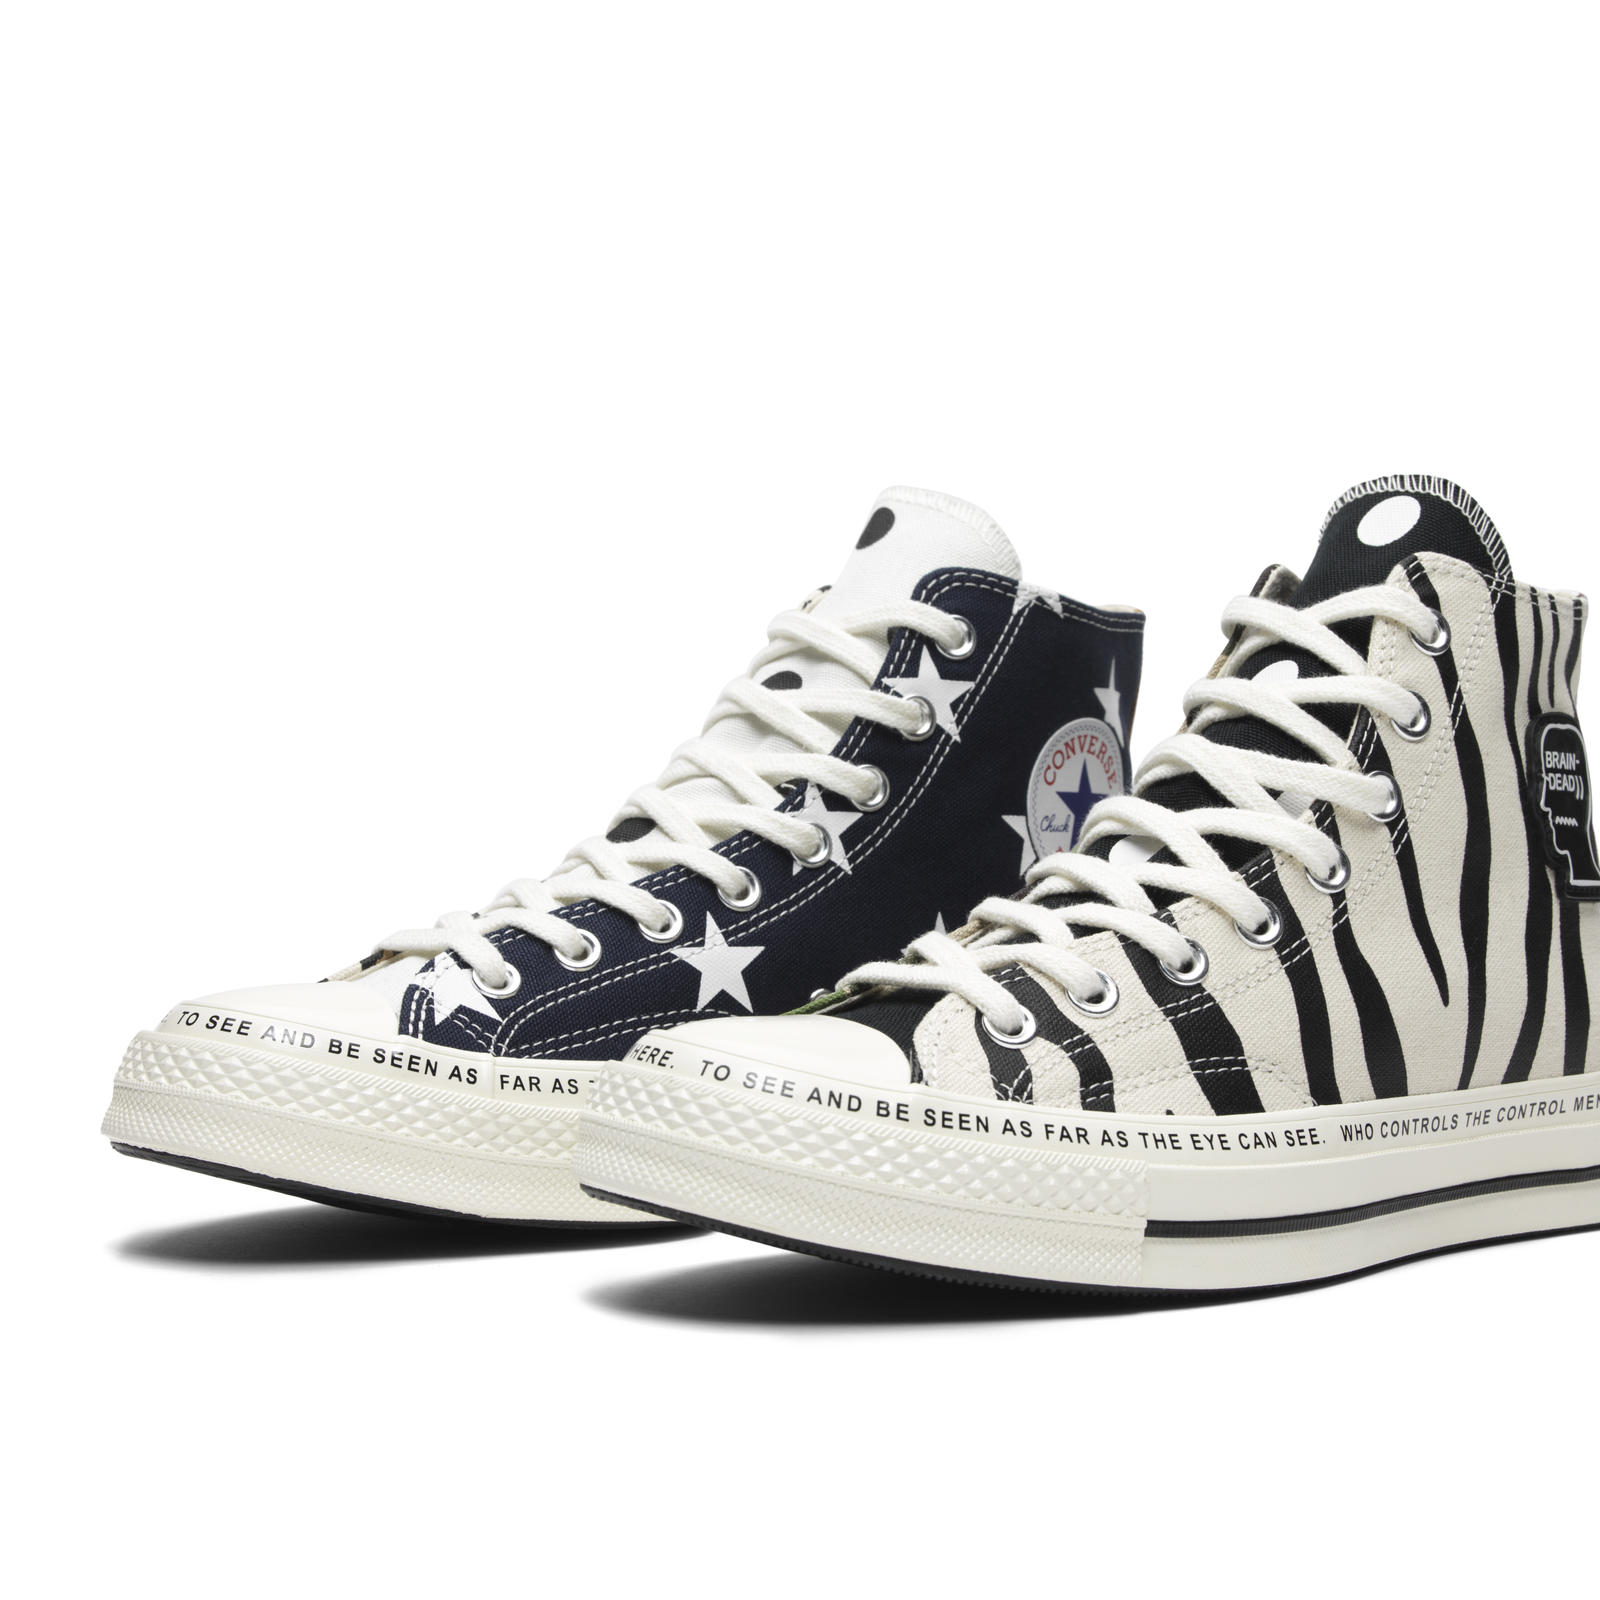 Icon Meets Iconoclast: Behind the Converse x Brain Dead Collaboration 6